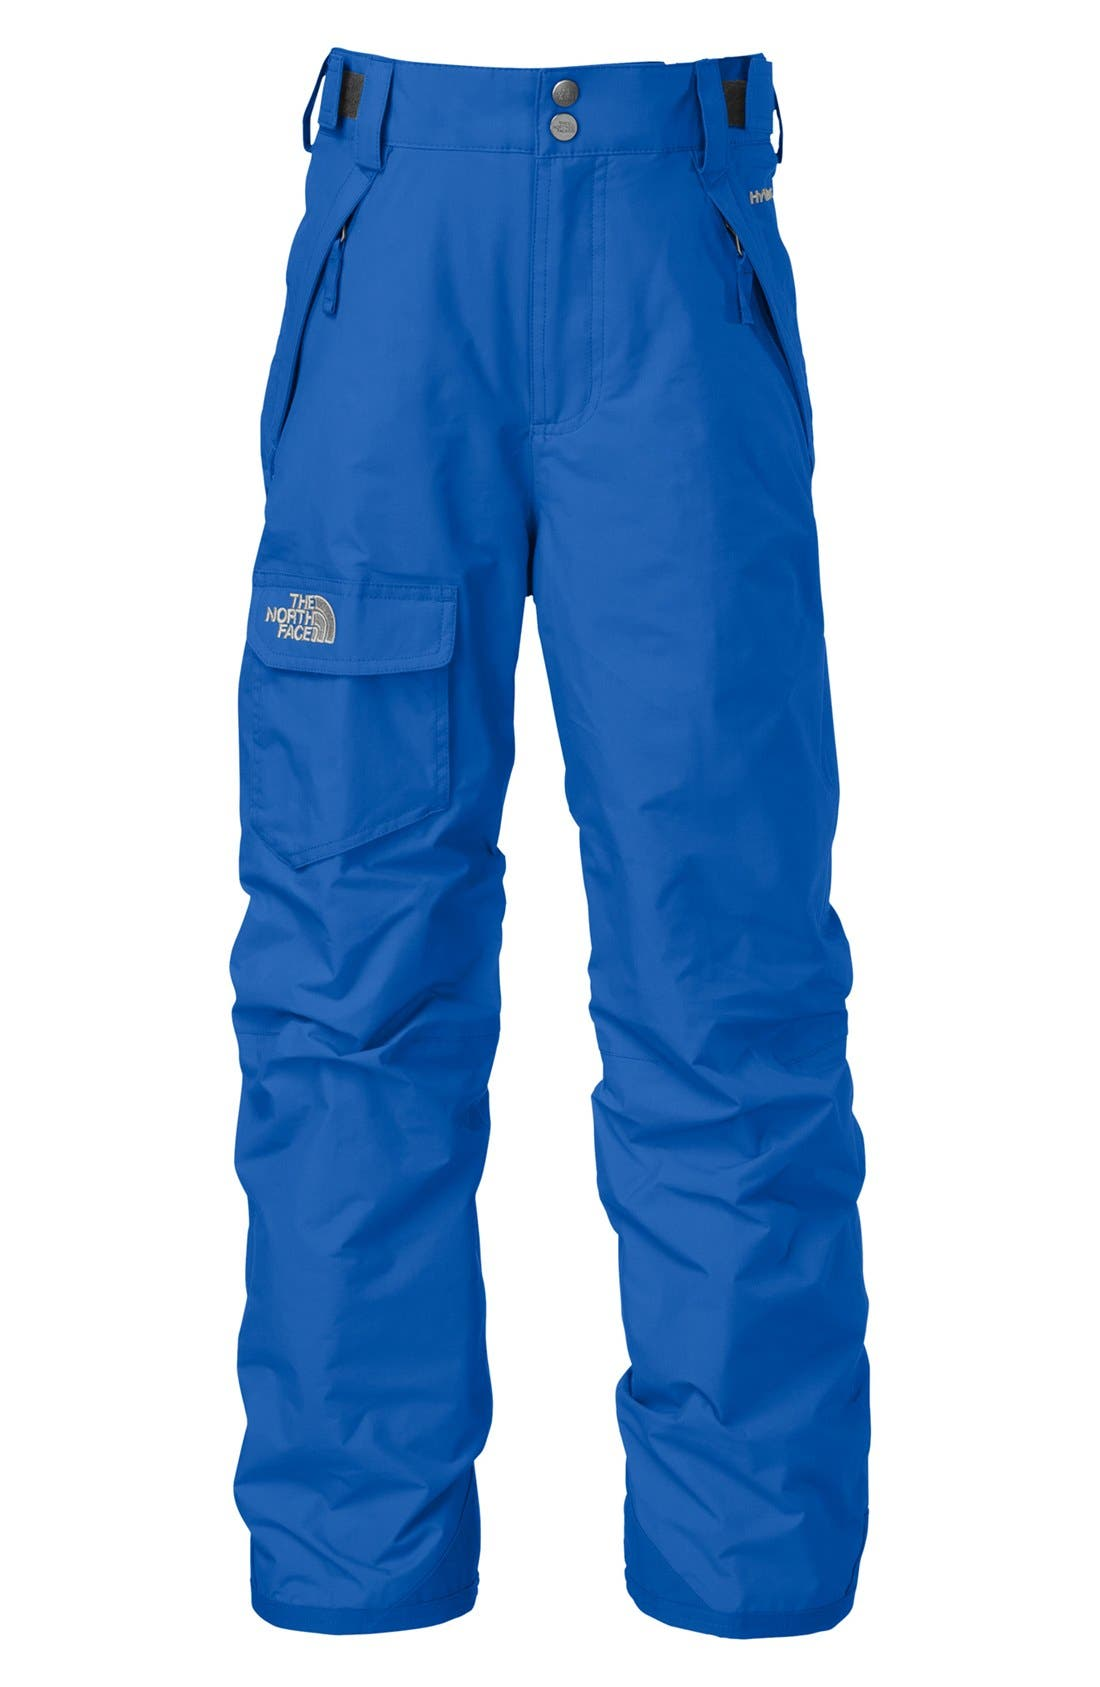 Alternate Image 1 Selected - The North Face 'Freedom' Insulated Snow Pants (Big Boys)